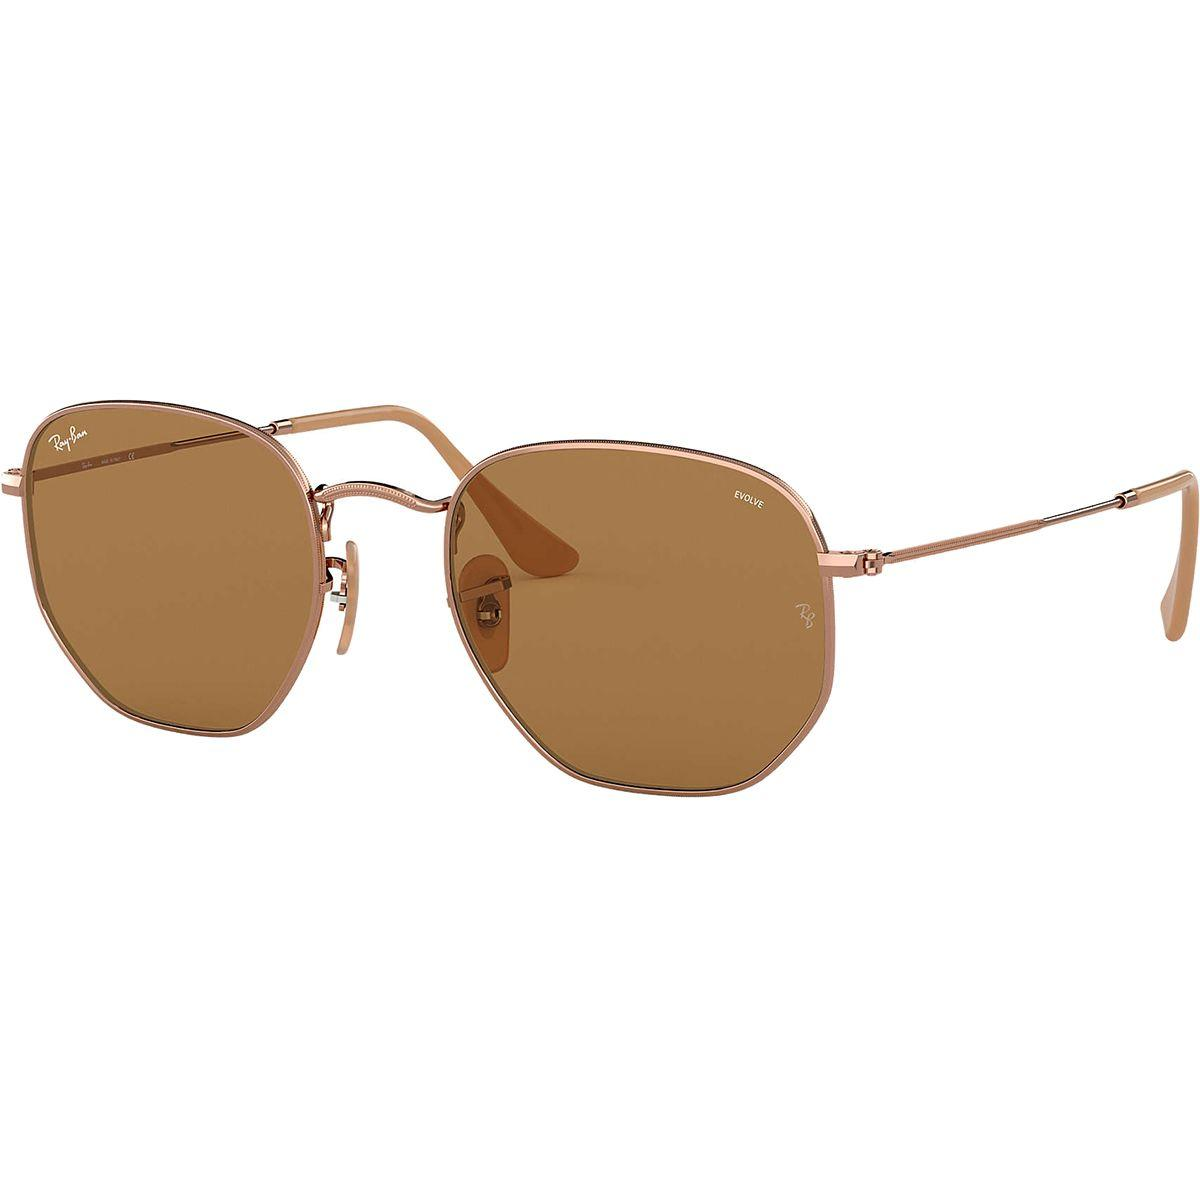 5eb02ff379d Lyst - Ray-Ban Hexagonal Evolve Photochromic Sunglasses in Brown for Men